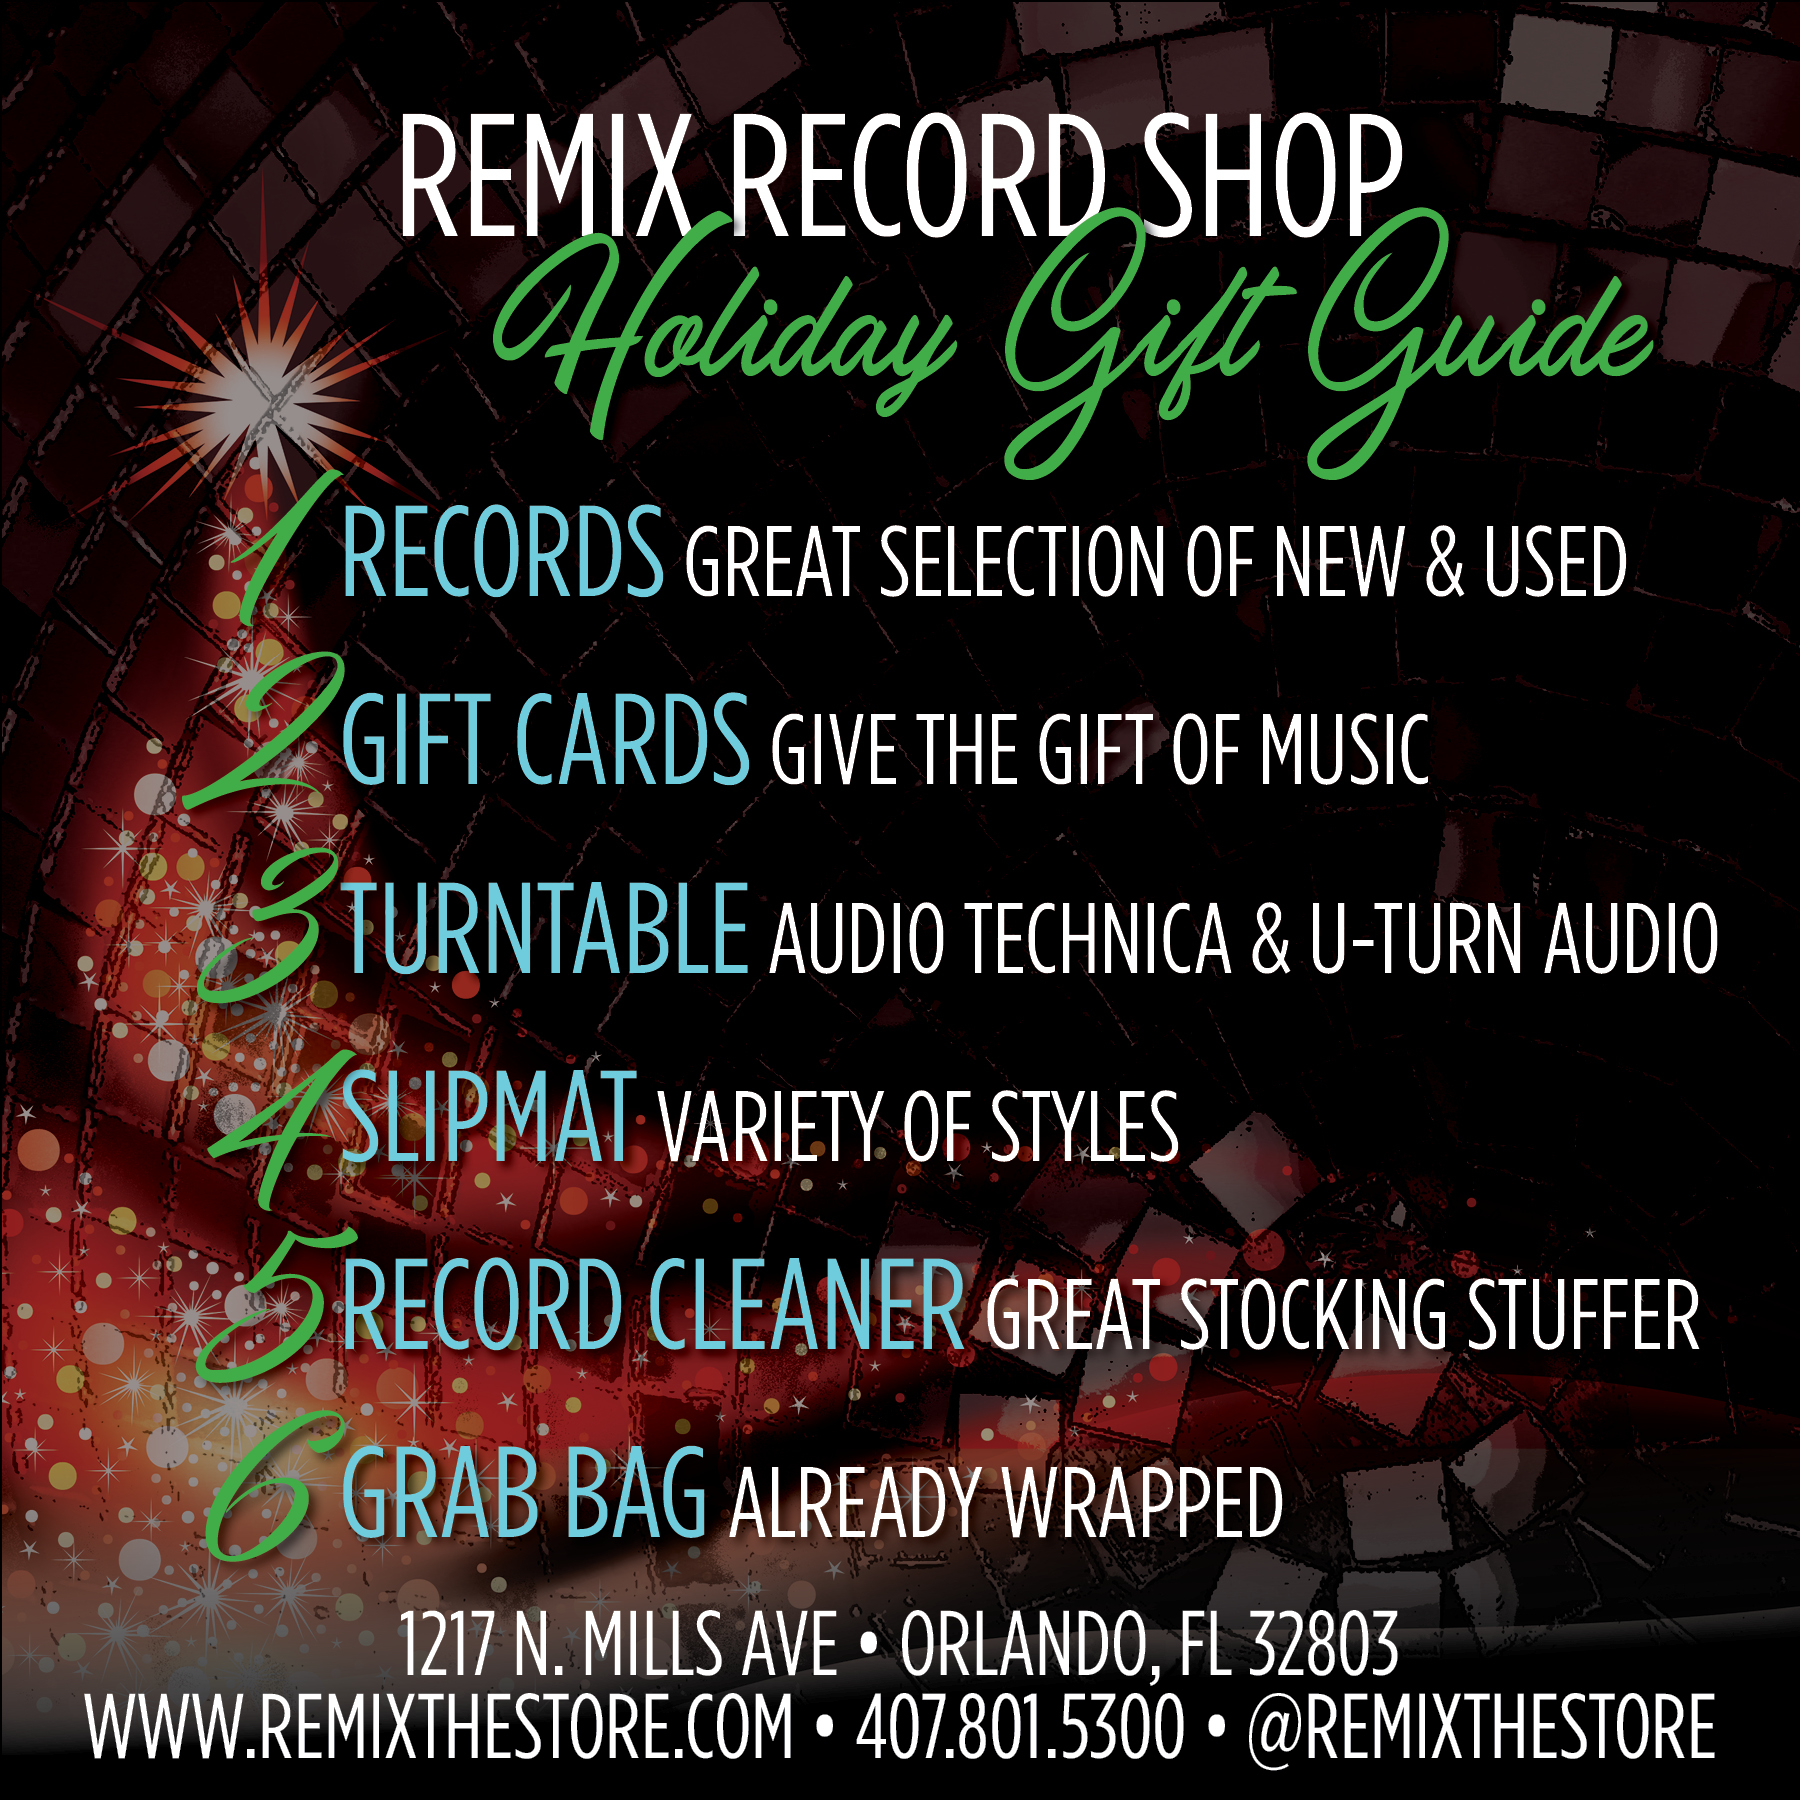 REMIX RECORD SHOP Holiday Gift Guide   Not sure what to get that special someone for Christmas? We can help! Here are six great gift ideas.  1.  RECORDS  - We have a large selection of new and used vinyl records. We carry rock, pop, hip-hop, electronic dance music, house, trance, breaks and more. There's something for everyone. Not exactly sure? Our team can help.   2.  GIFT CARDS  - Give the gift of music. Let that someone special come crate digging and pick out their own records!   3.  TURNTABLE  - Whether you're ready to upgrade or you are just getting into records we have a great selection of turntables. We carry Audio Technica and U-Turn Audio.   4.  SLIPMAT  - We have a variety of slipmat designs.   5.  RECORD CLEANER  - Makes an excellent stocking stuffer! After all, a clean record is a happy record!   6.  GRAB BAG  - Oh the mystery... the suspense! We hand-pick each record that goes into a grab bag. It's a great way to expand your music knowledge! They also make great conversation starters. BONUS they're already wrapped! We'll even give you a bow.  REMIX RECORD SHOP is located in the Mills50 District of Orlando - 1217 N. Mills Ave • Orlando, FL 32803. Open Monday - Saturday from 11a - 7p and Sunday from 12p - 5p. Follow us @remixthestore